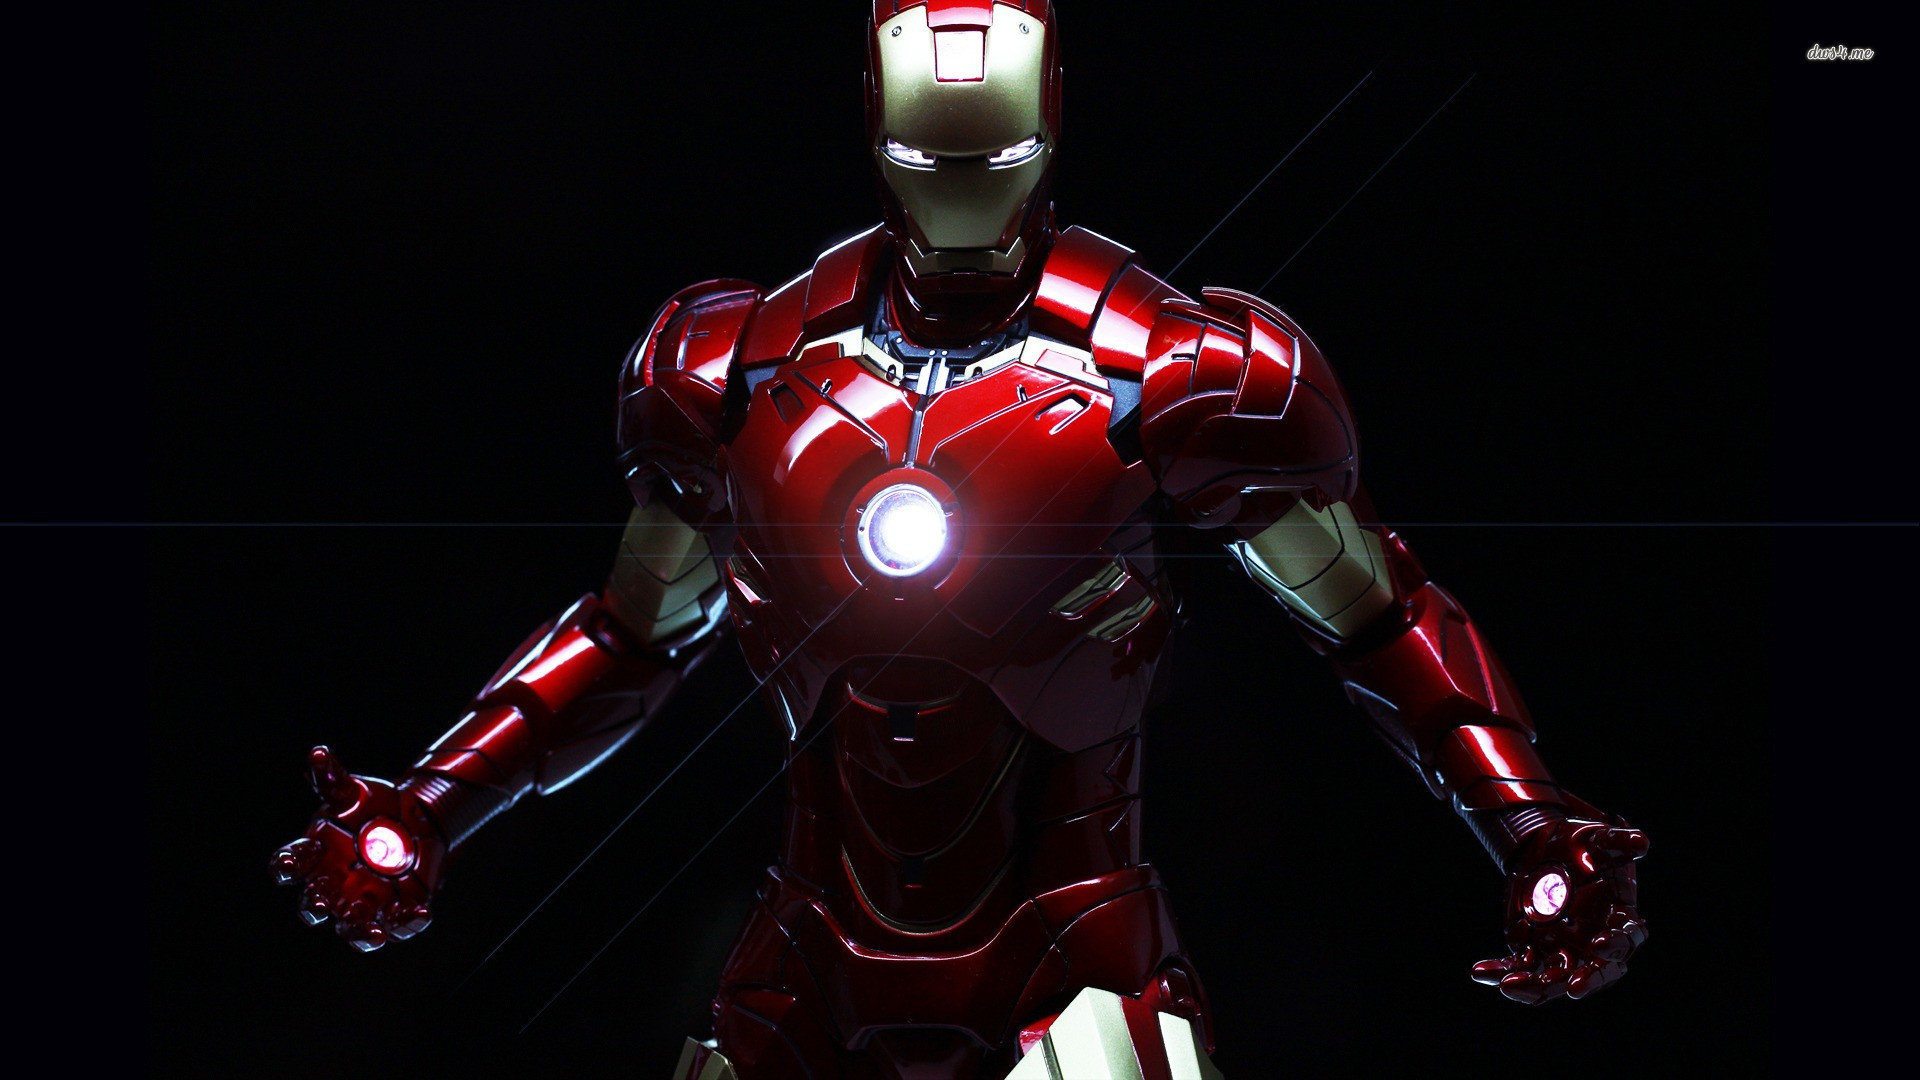 Iron-Man-For-Free-Download-In-HD-wallpaper-wp3407491